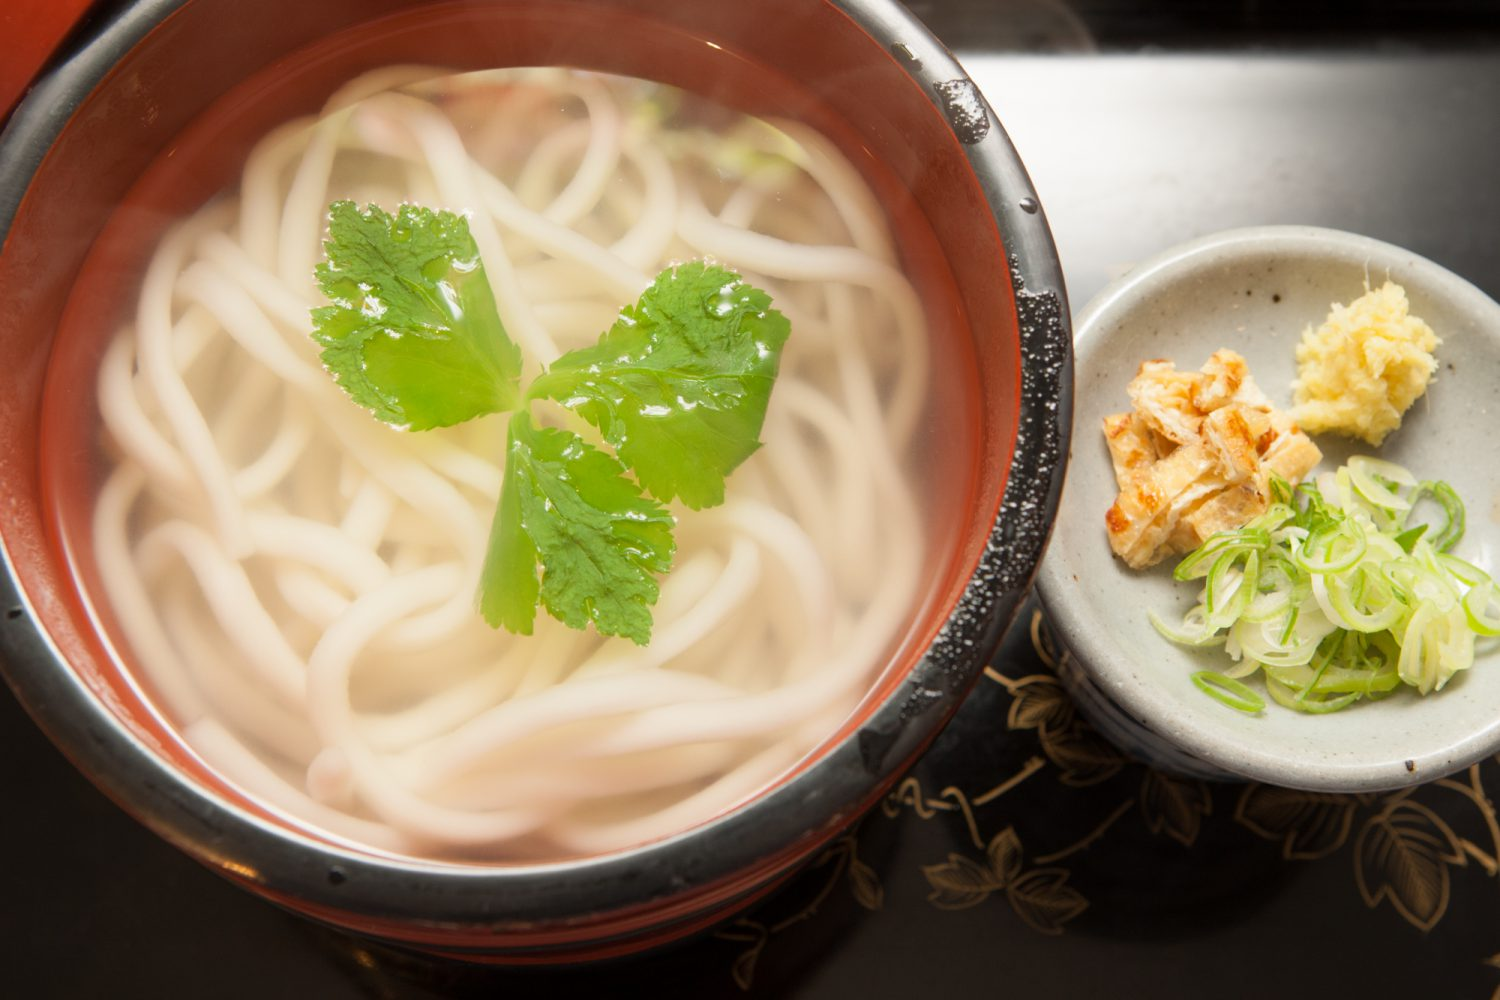 KAMA-AGE(釜揚げ) Noodles served in a lacquered wooden bucket